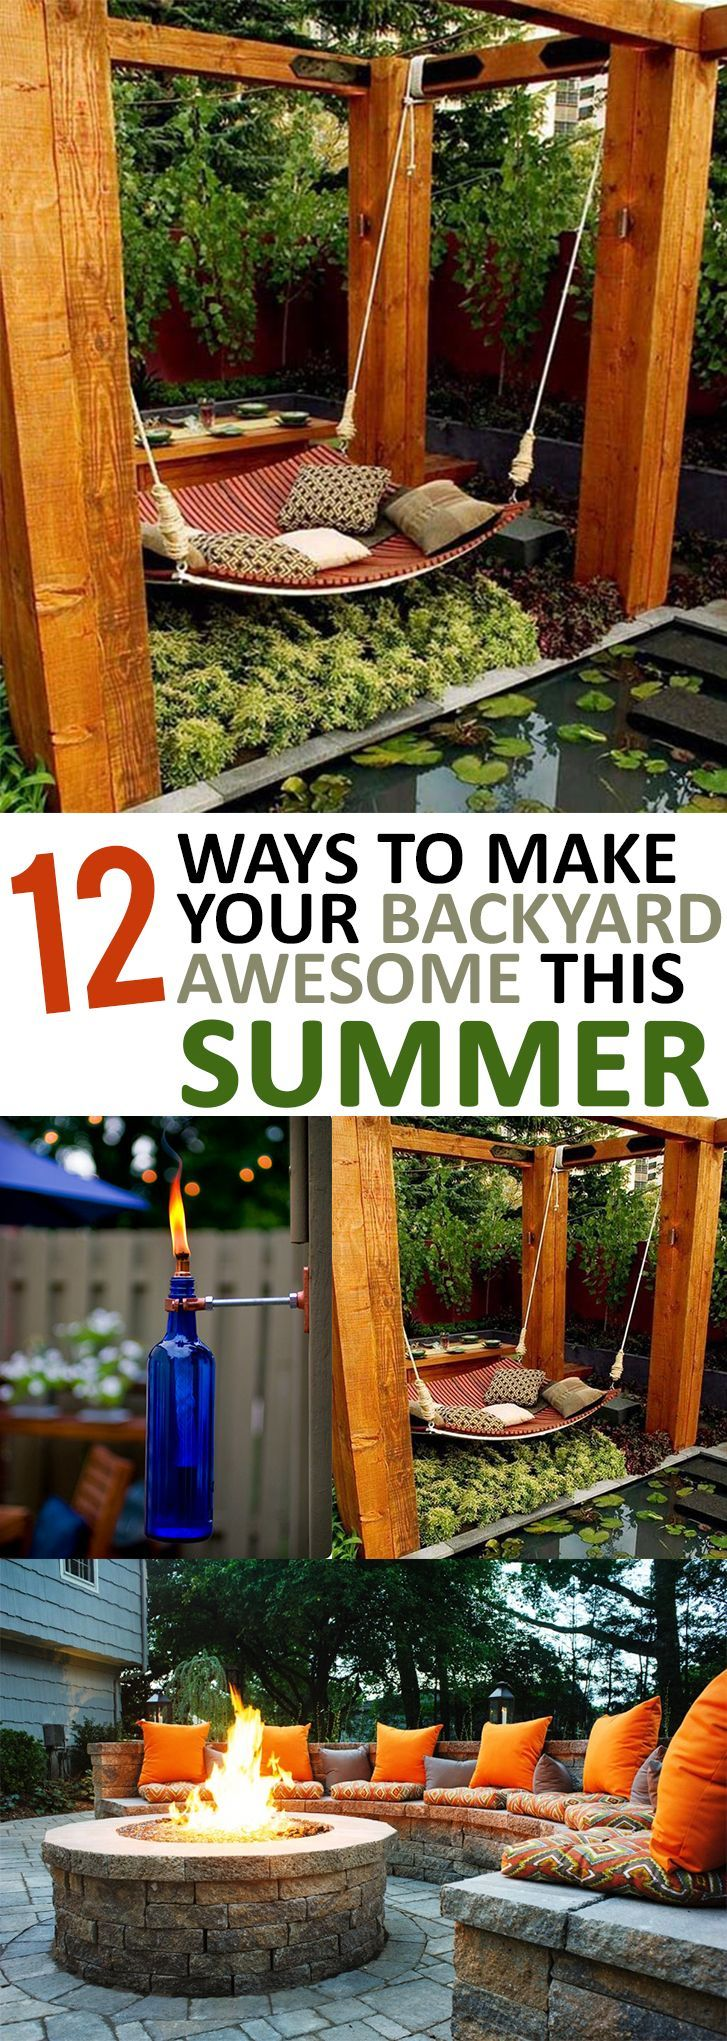 12 Ways to Make Your Backyard Awesome This Summer Page 2 ...